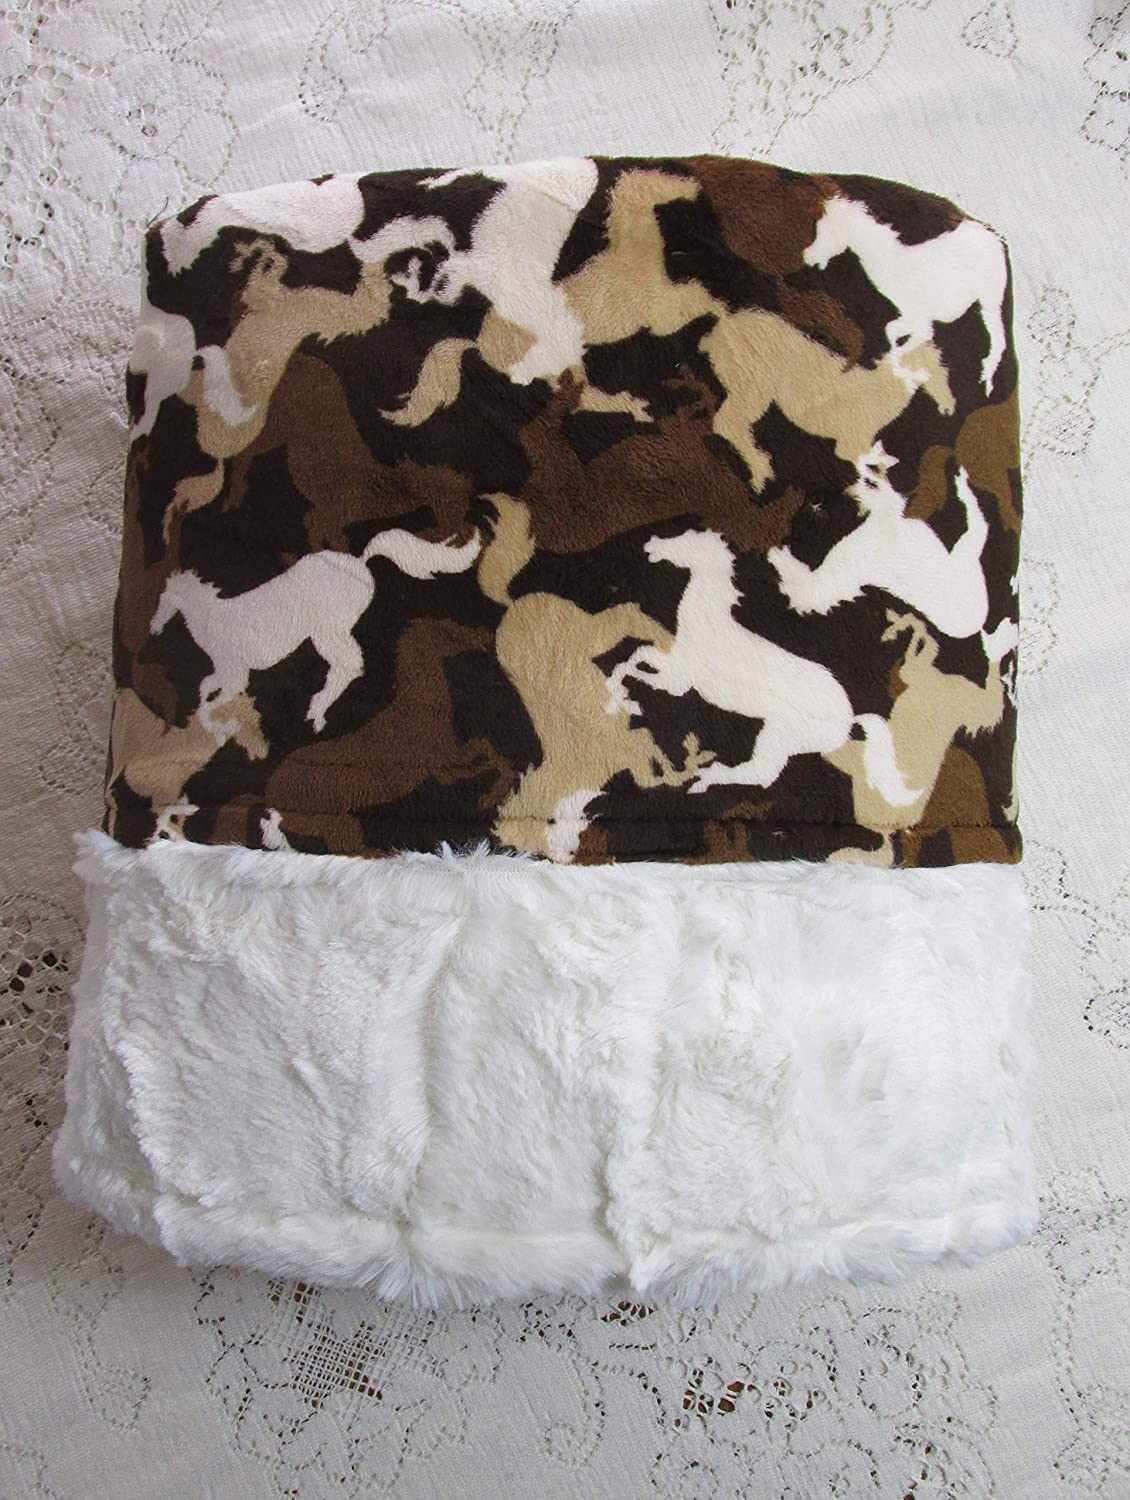 Luxe Brown /& Cream Wild Horses Throw Blanket 61 x 61 Ivory Crushed Minky Backing RTS